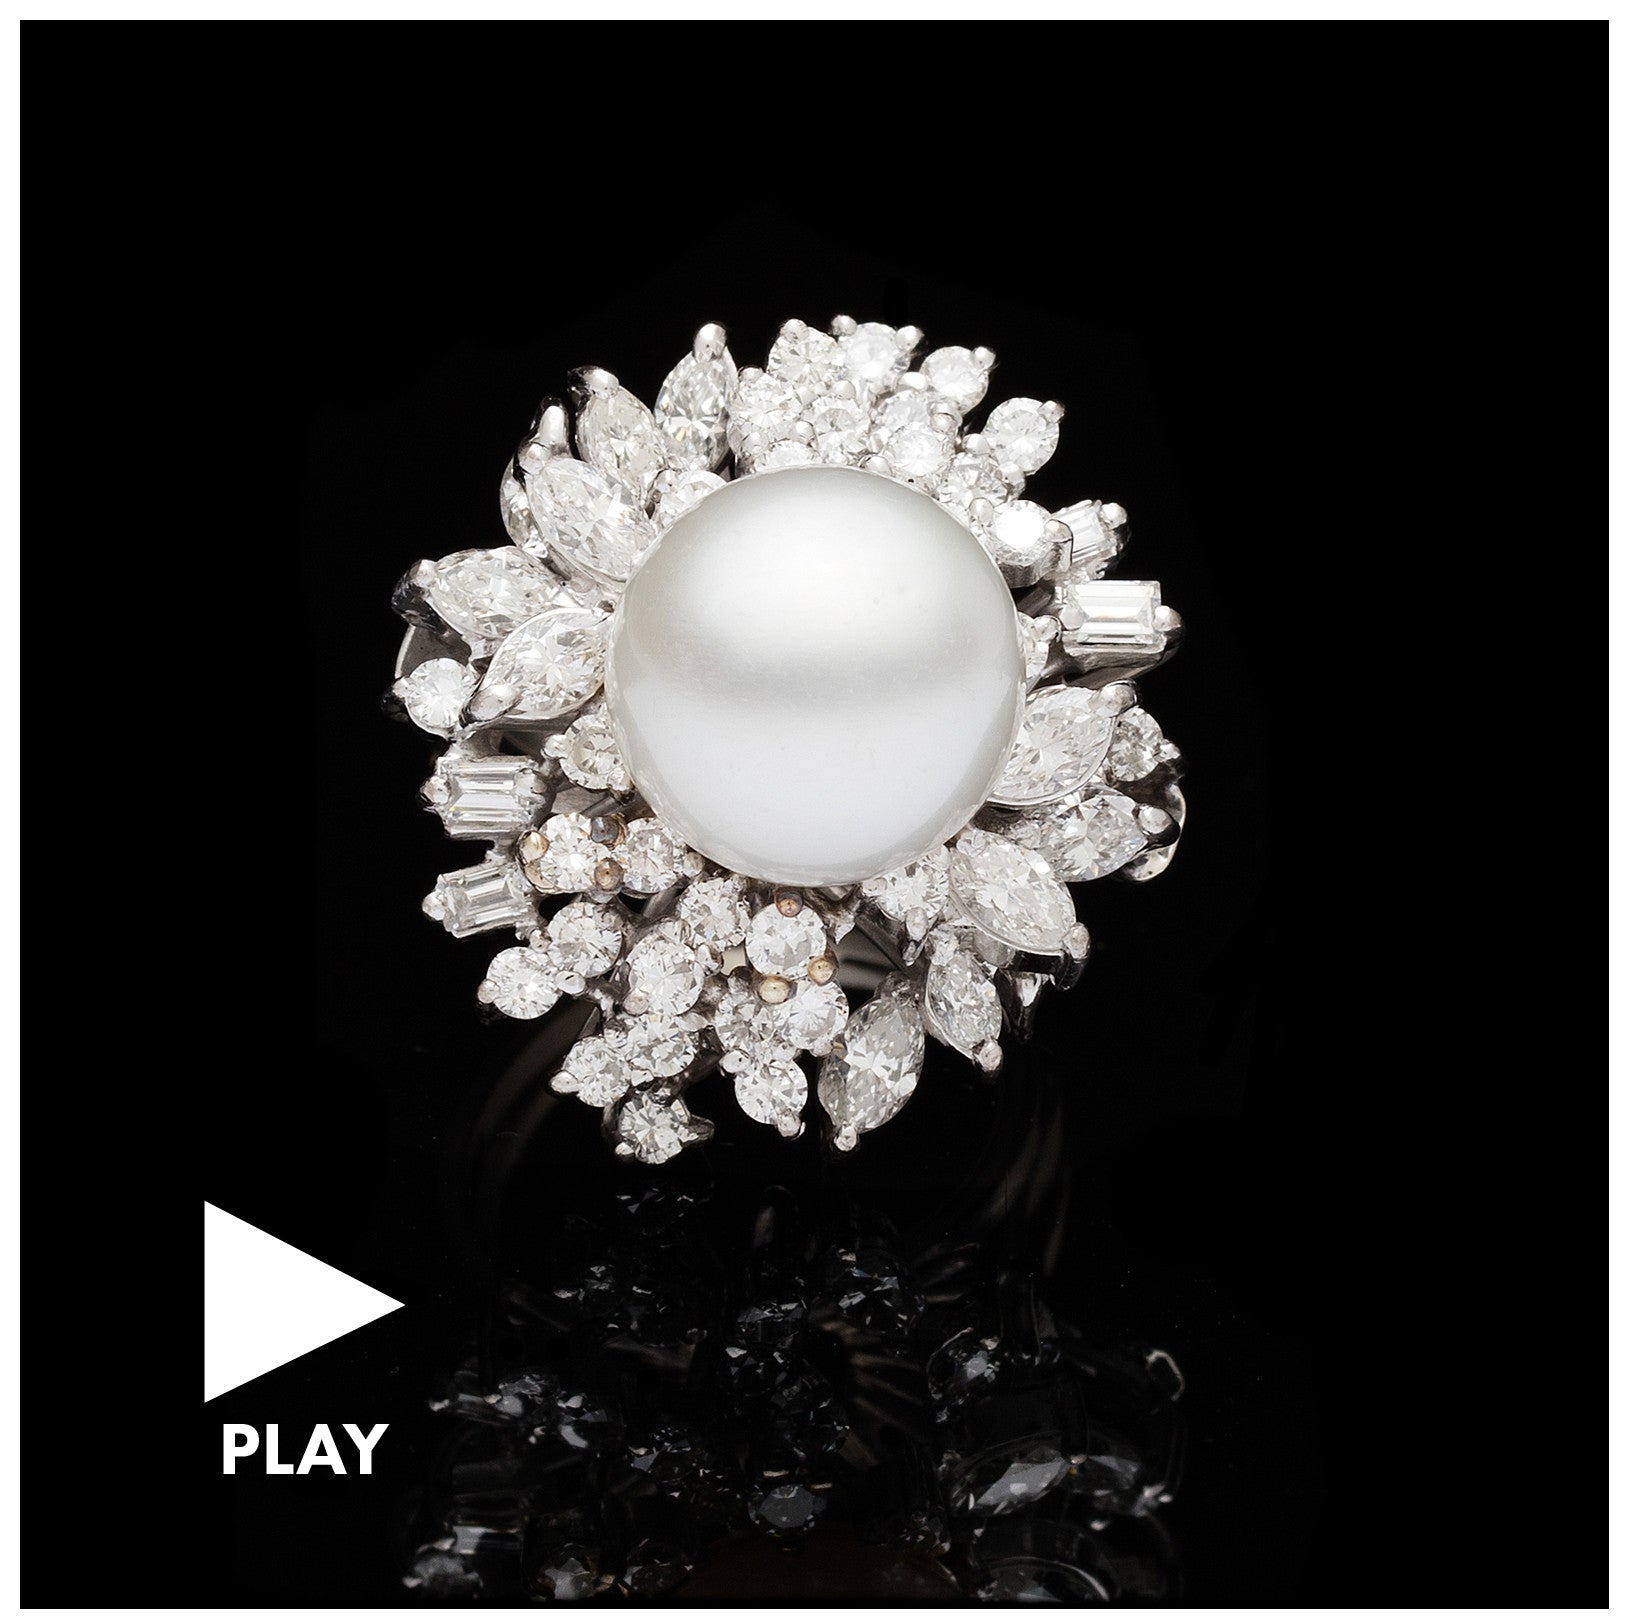 Vintage Pearl & Diamond Cocktail Ring, Price Upon Request